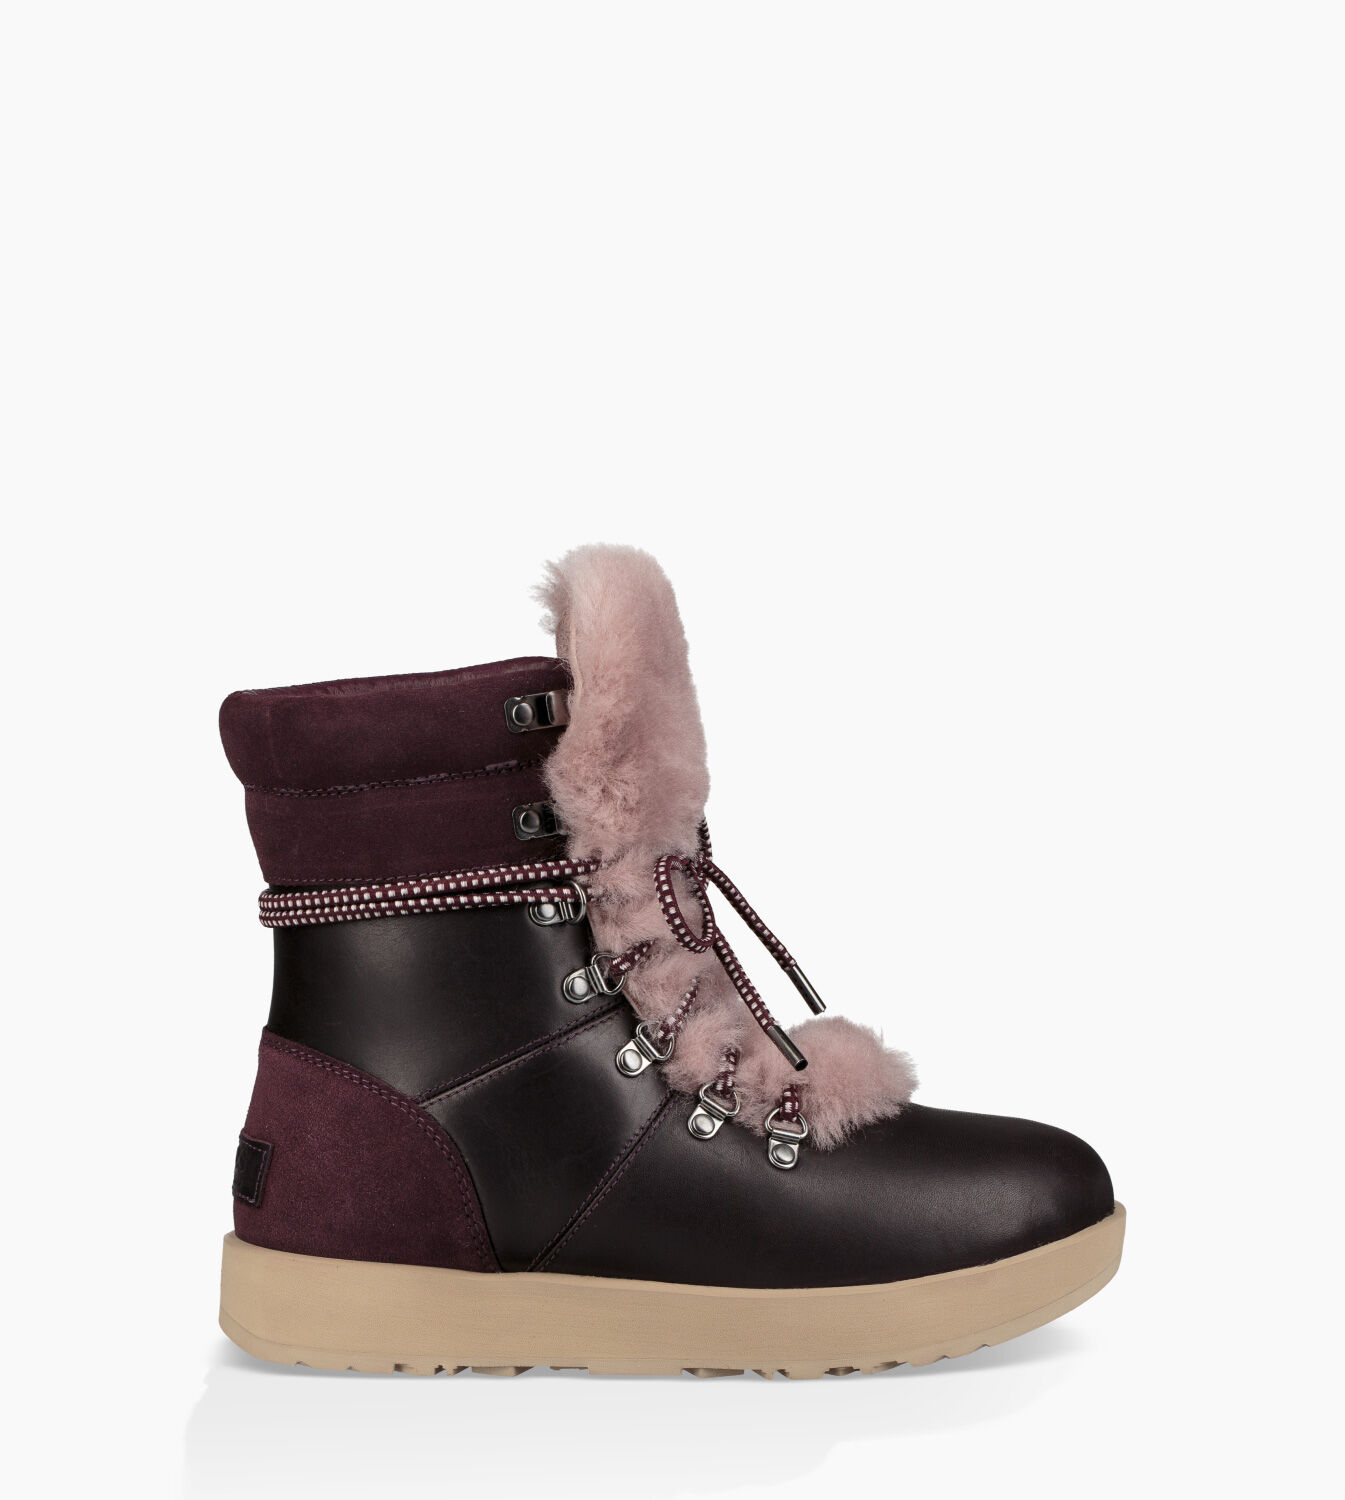 UGG Women's Viki Waterproof Leather Lace Up Boots - Port - UK 5.5